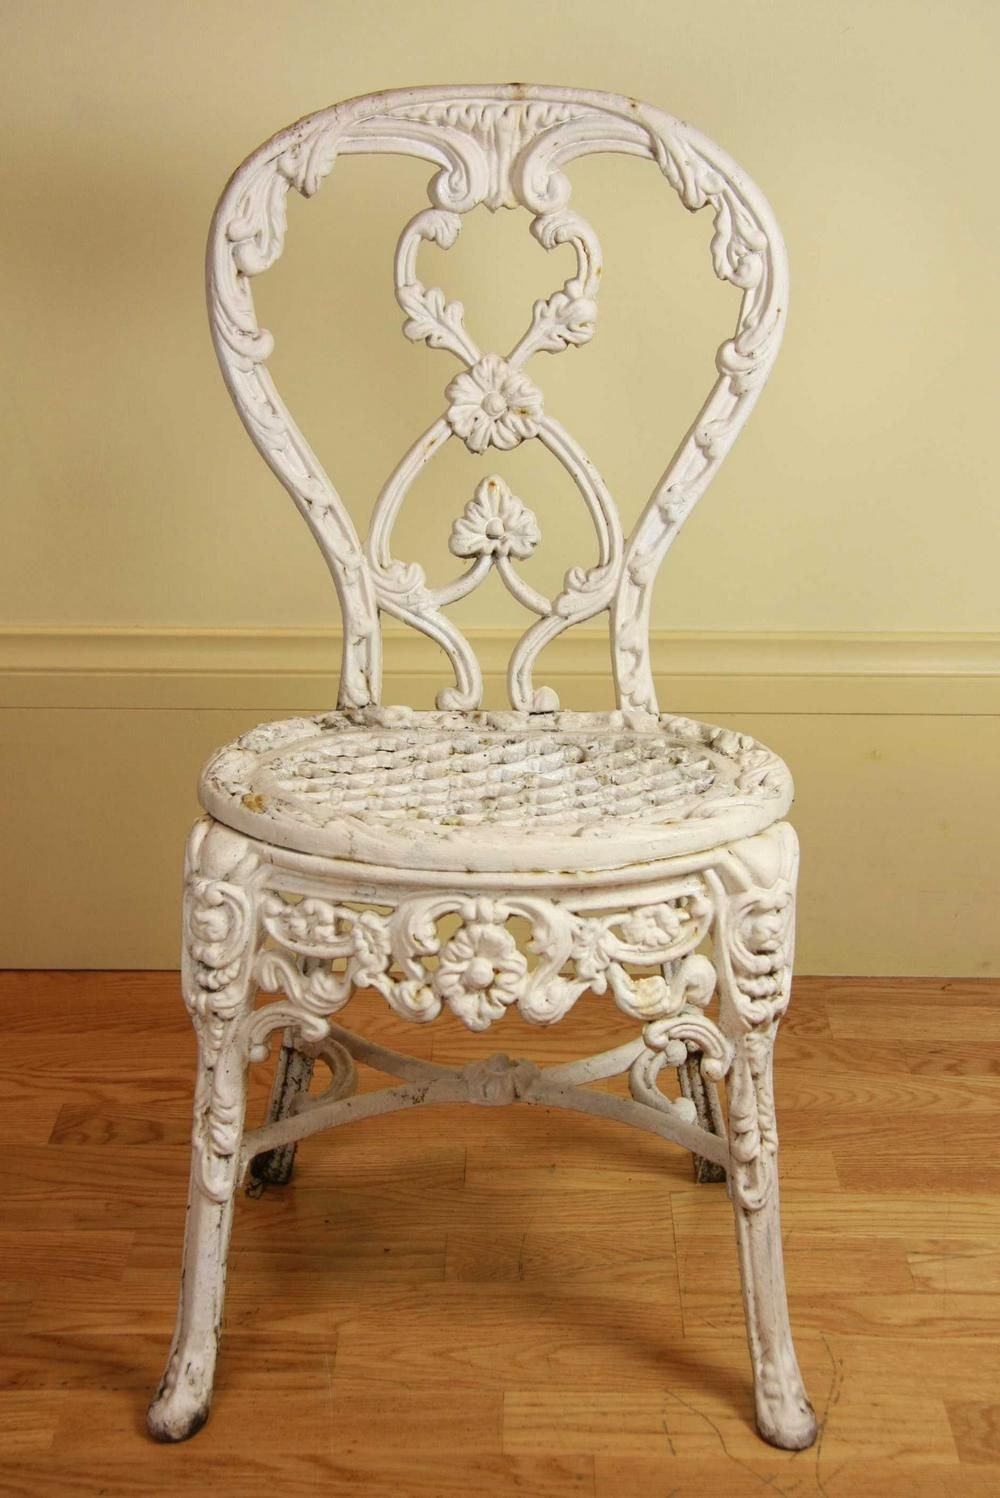 A French wrought iron ladies garden chair, circa 1850, the…